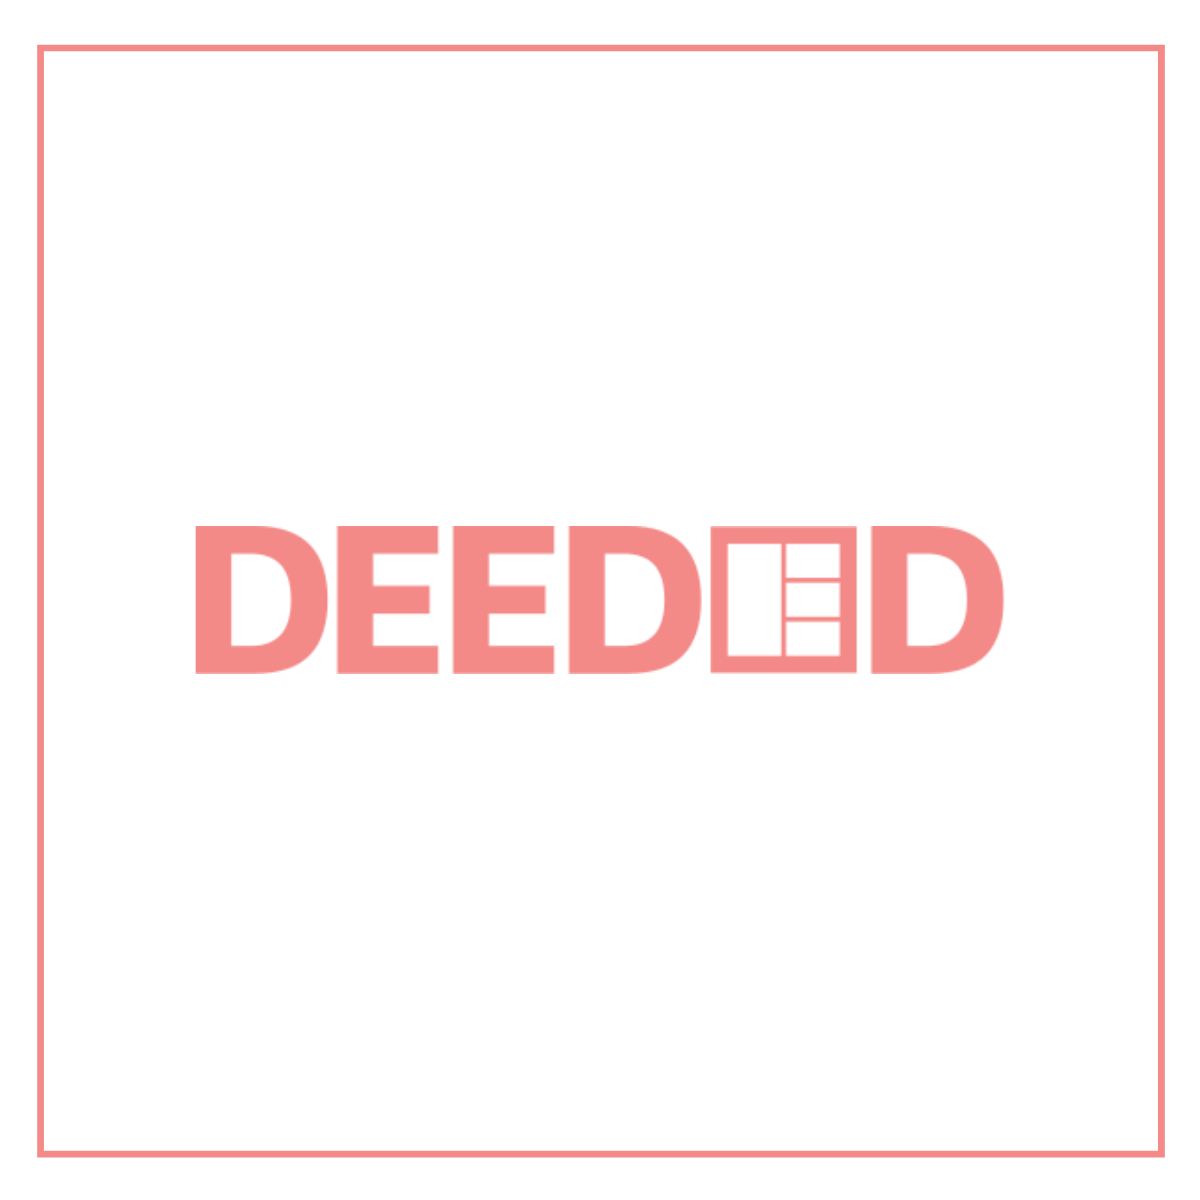 Deeded ⎯ Helping Canadians Close Their Mortgages From The Comfort of Home